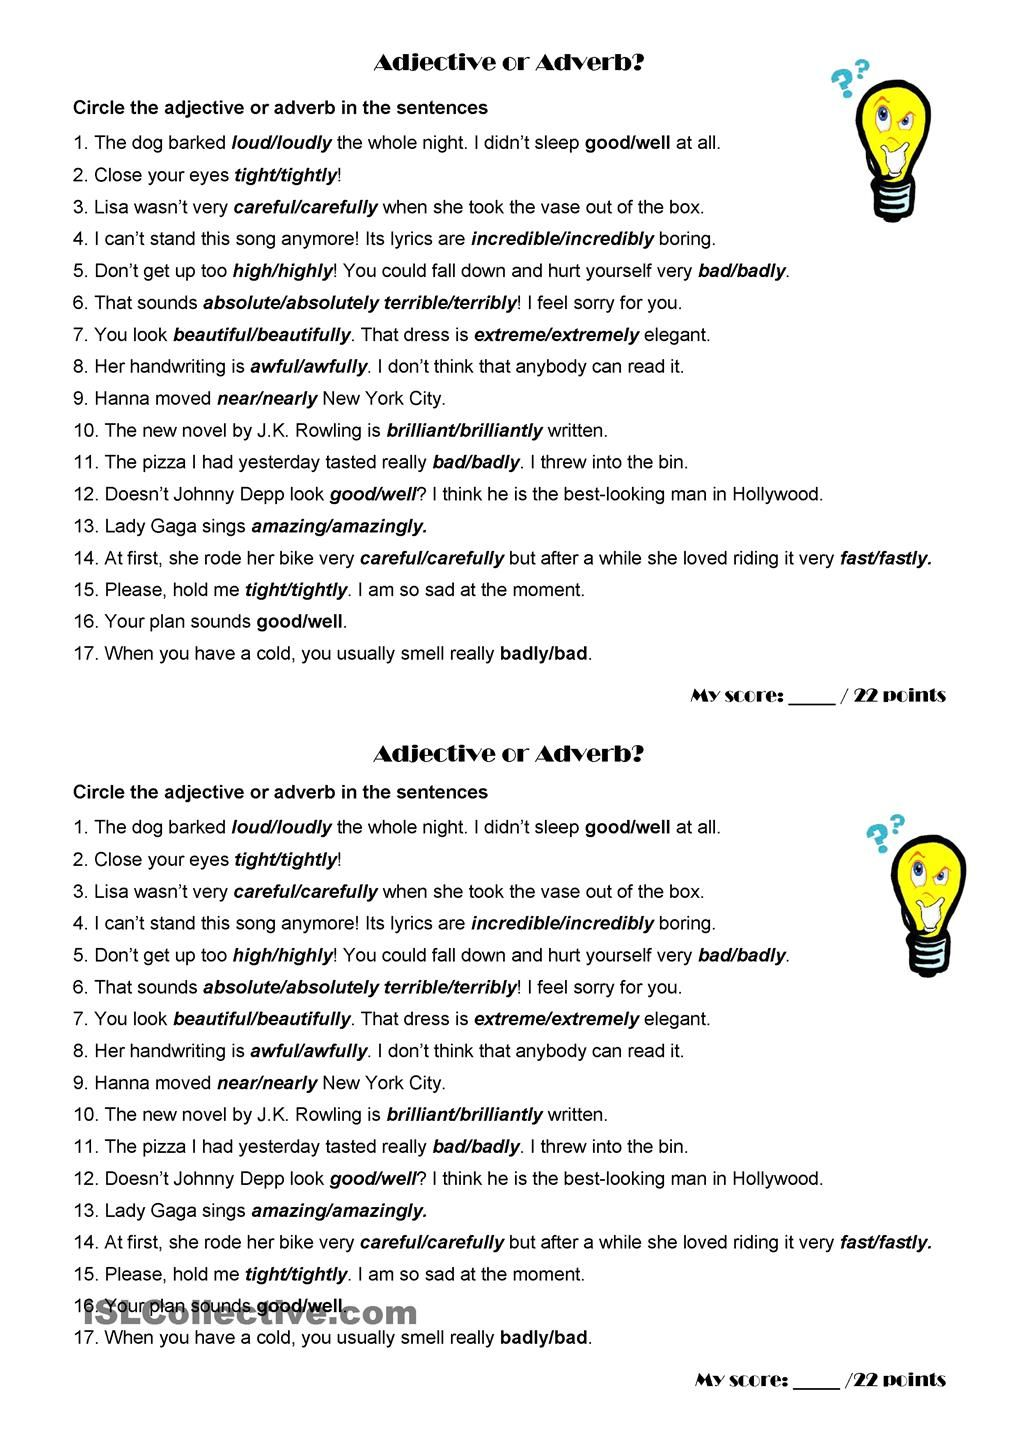 worksheet Adjective And Adverb Worksheets adjective or adverb language pinterest adverbs worksheets worksheet free esl printable made by teachers